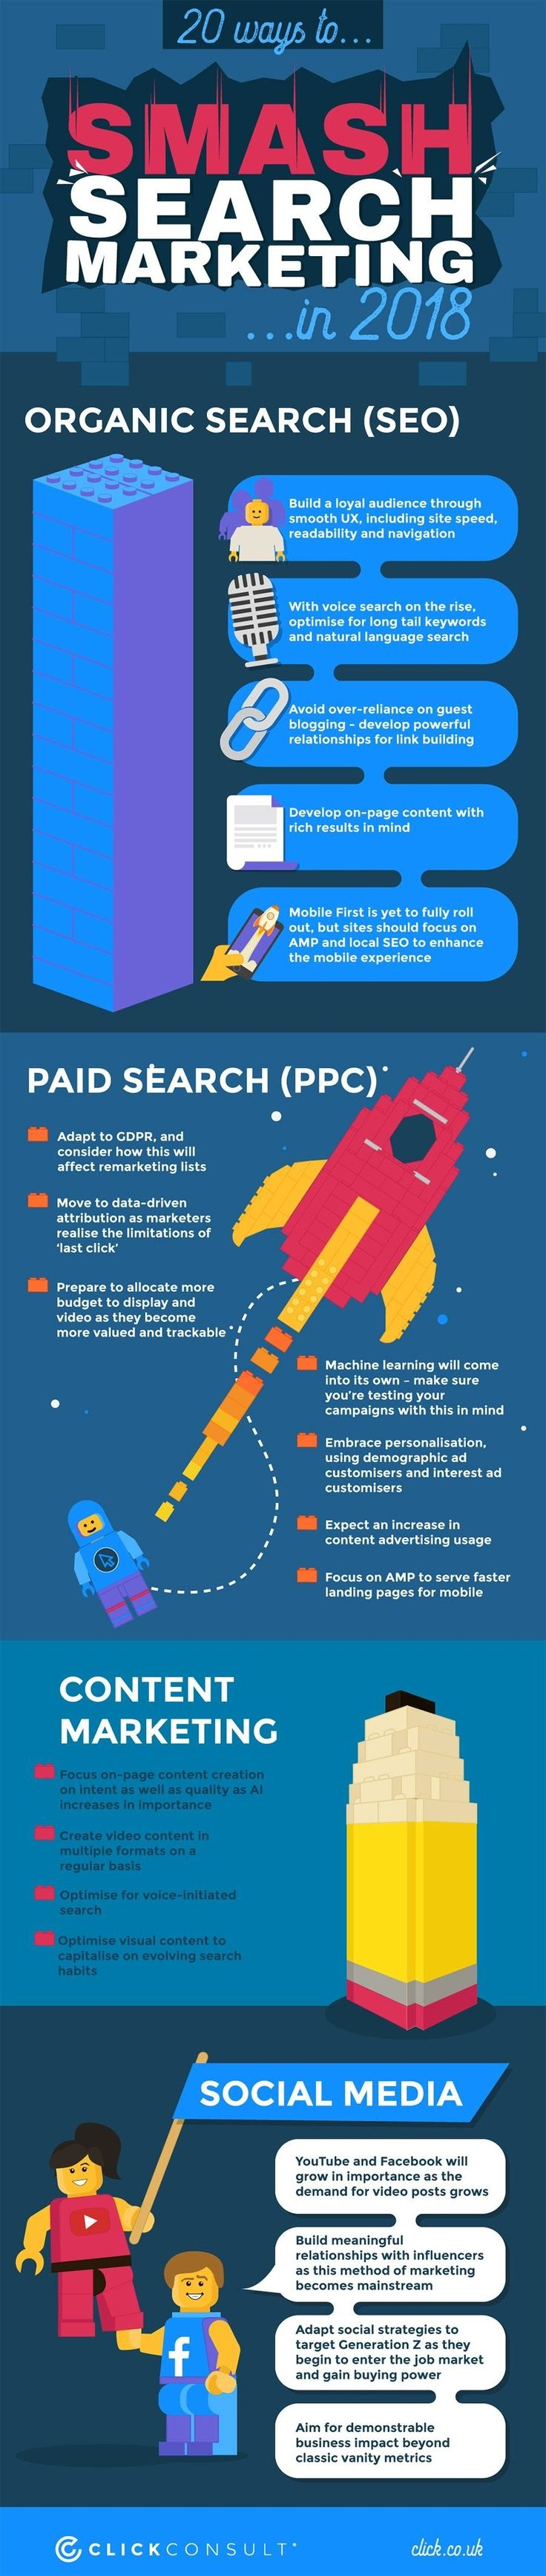 20 Ways to Smash Search Marketing in 2018 - #infographic